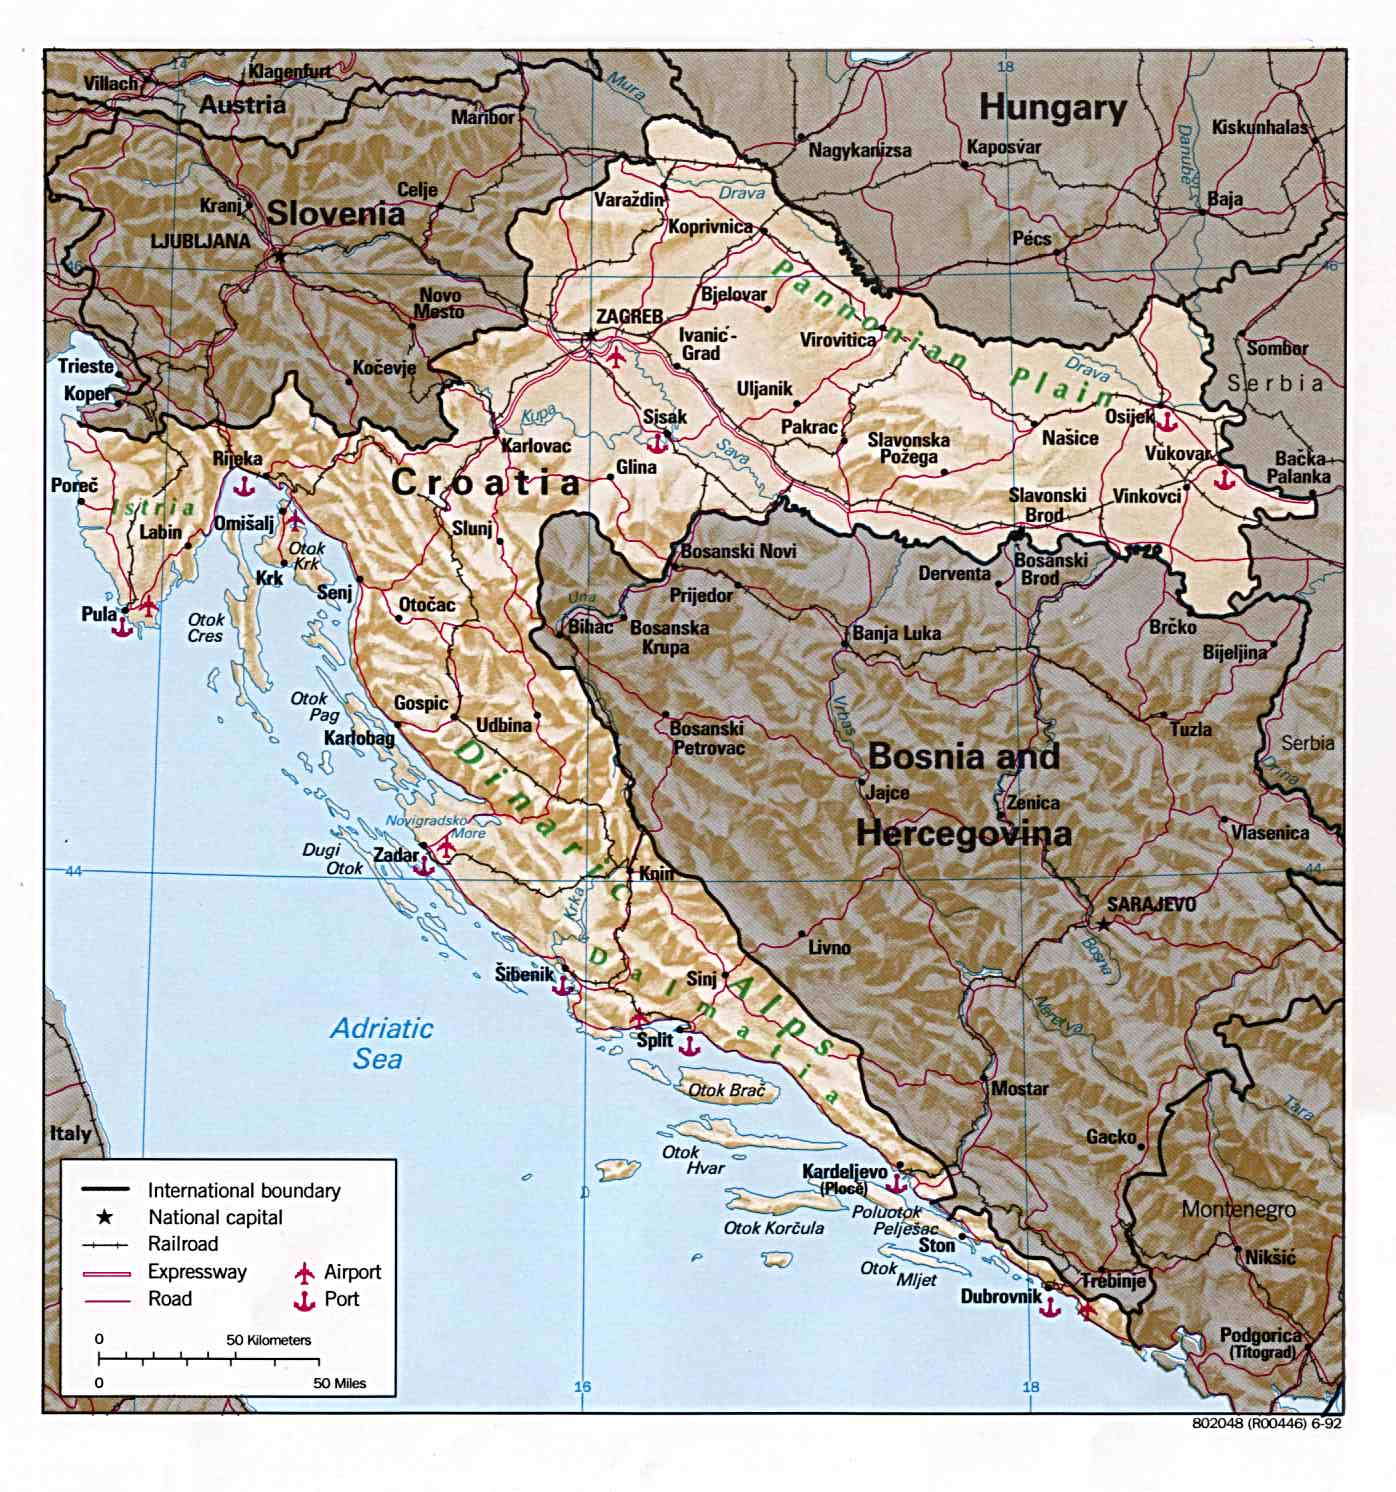 Croatia Maps - Perry-Castañeda Map Collection - UT Library Online